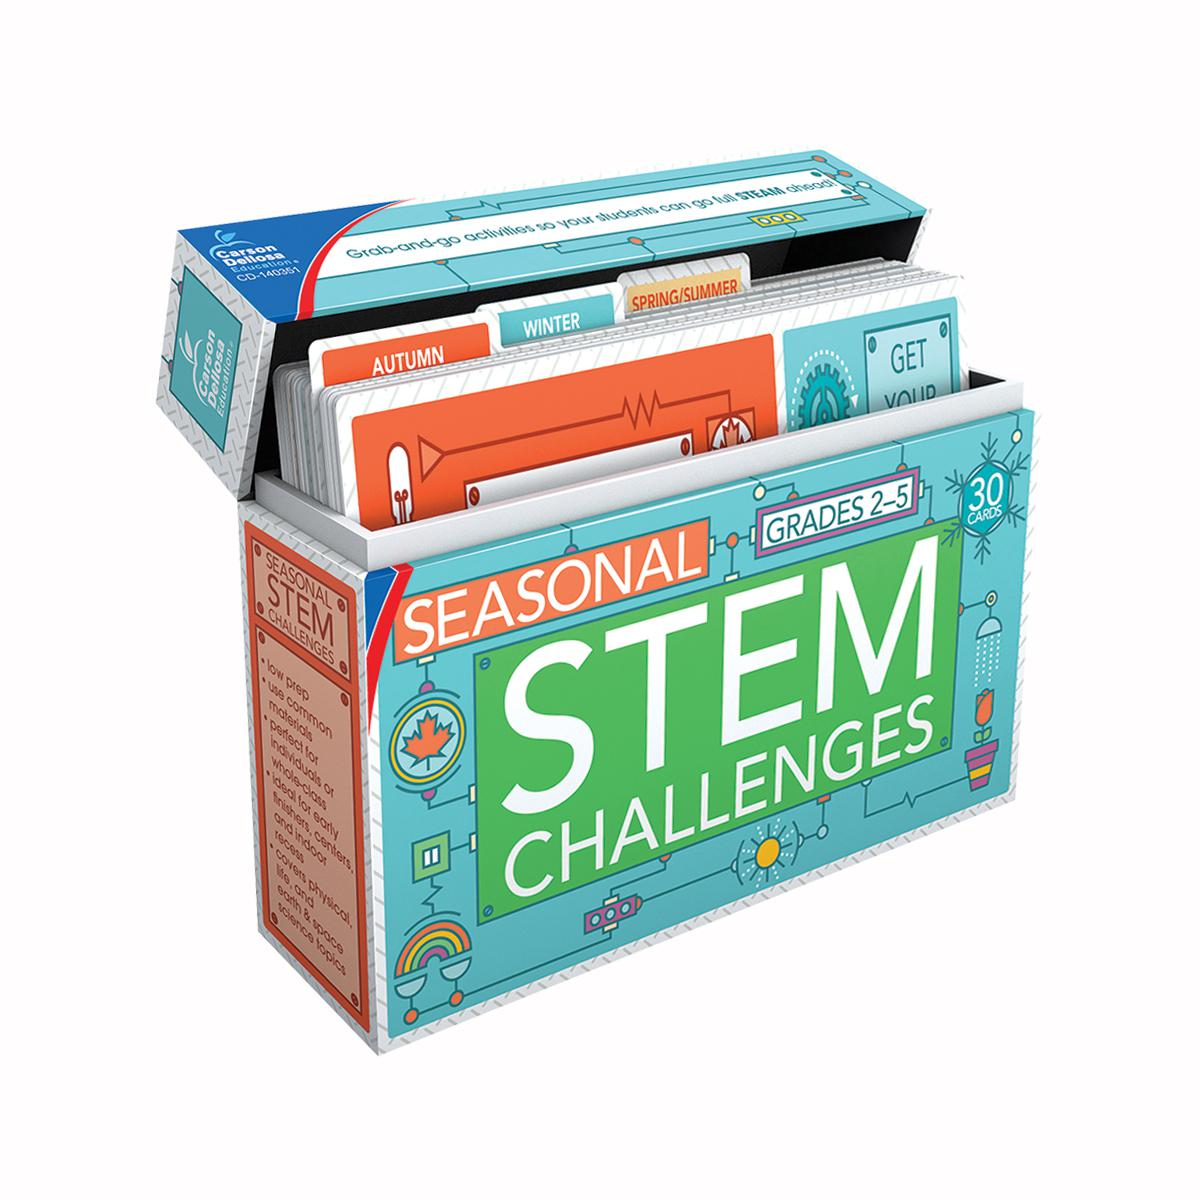 Seasonal STEM Challenges Learning Cards: Grades 2-5